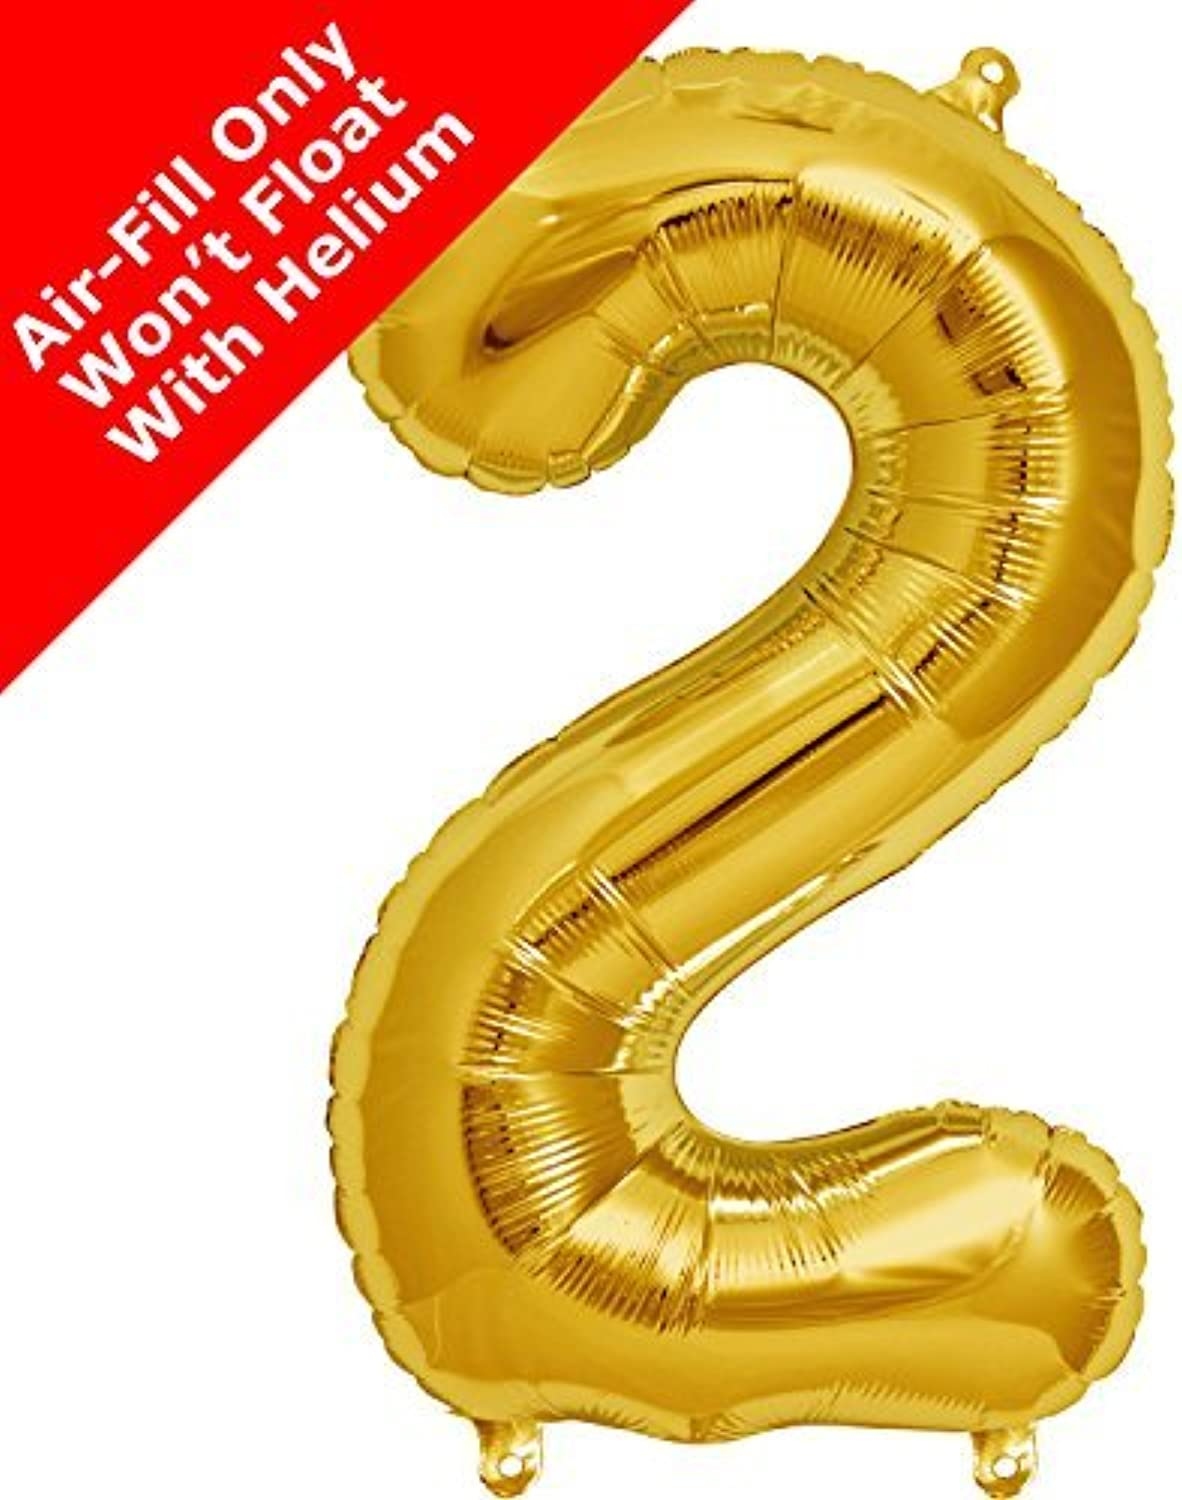 16 inch gold Number 2 Foil Balloon by Signature Balloons